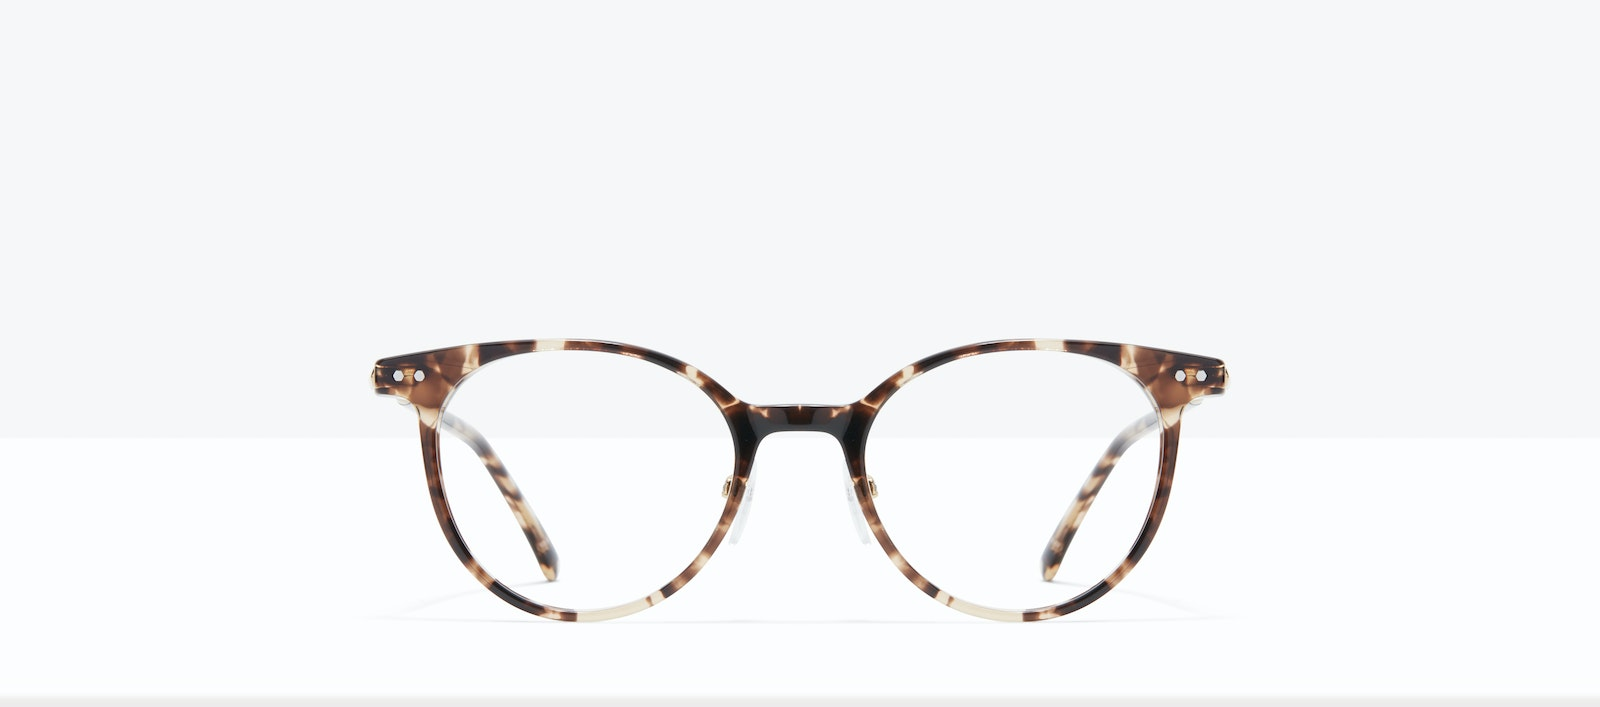 Affordable Fashion Glasses Round Eyeglasses Women Lightheart L Leopard Front